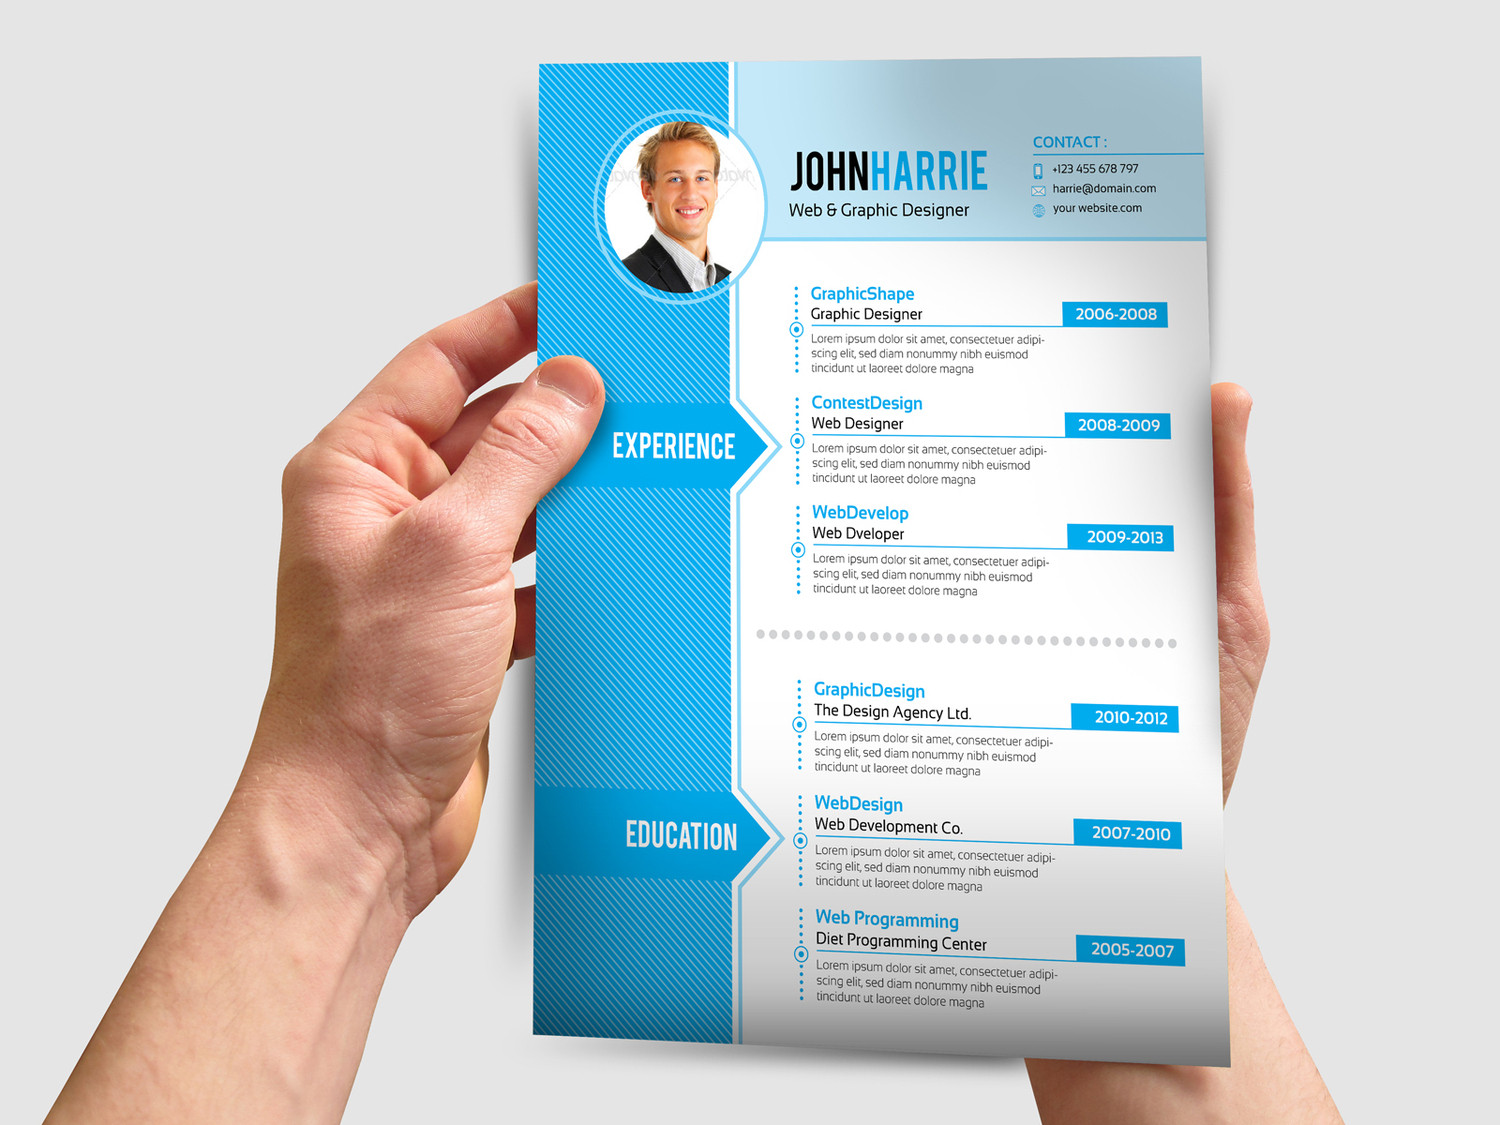 Cool Resume Design Examples. 10 awesome infographic resume ...